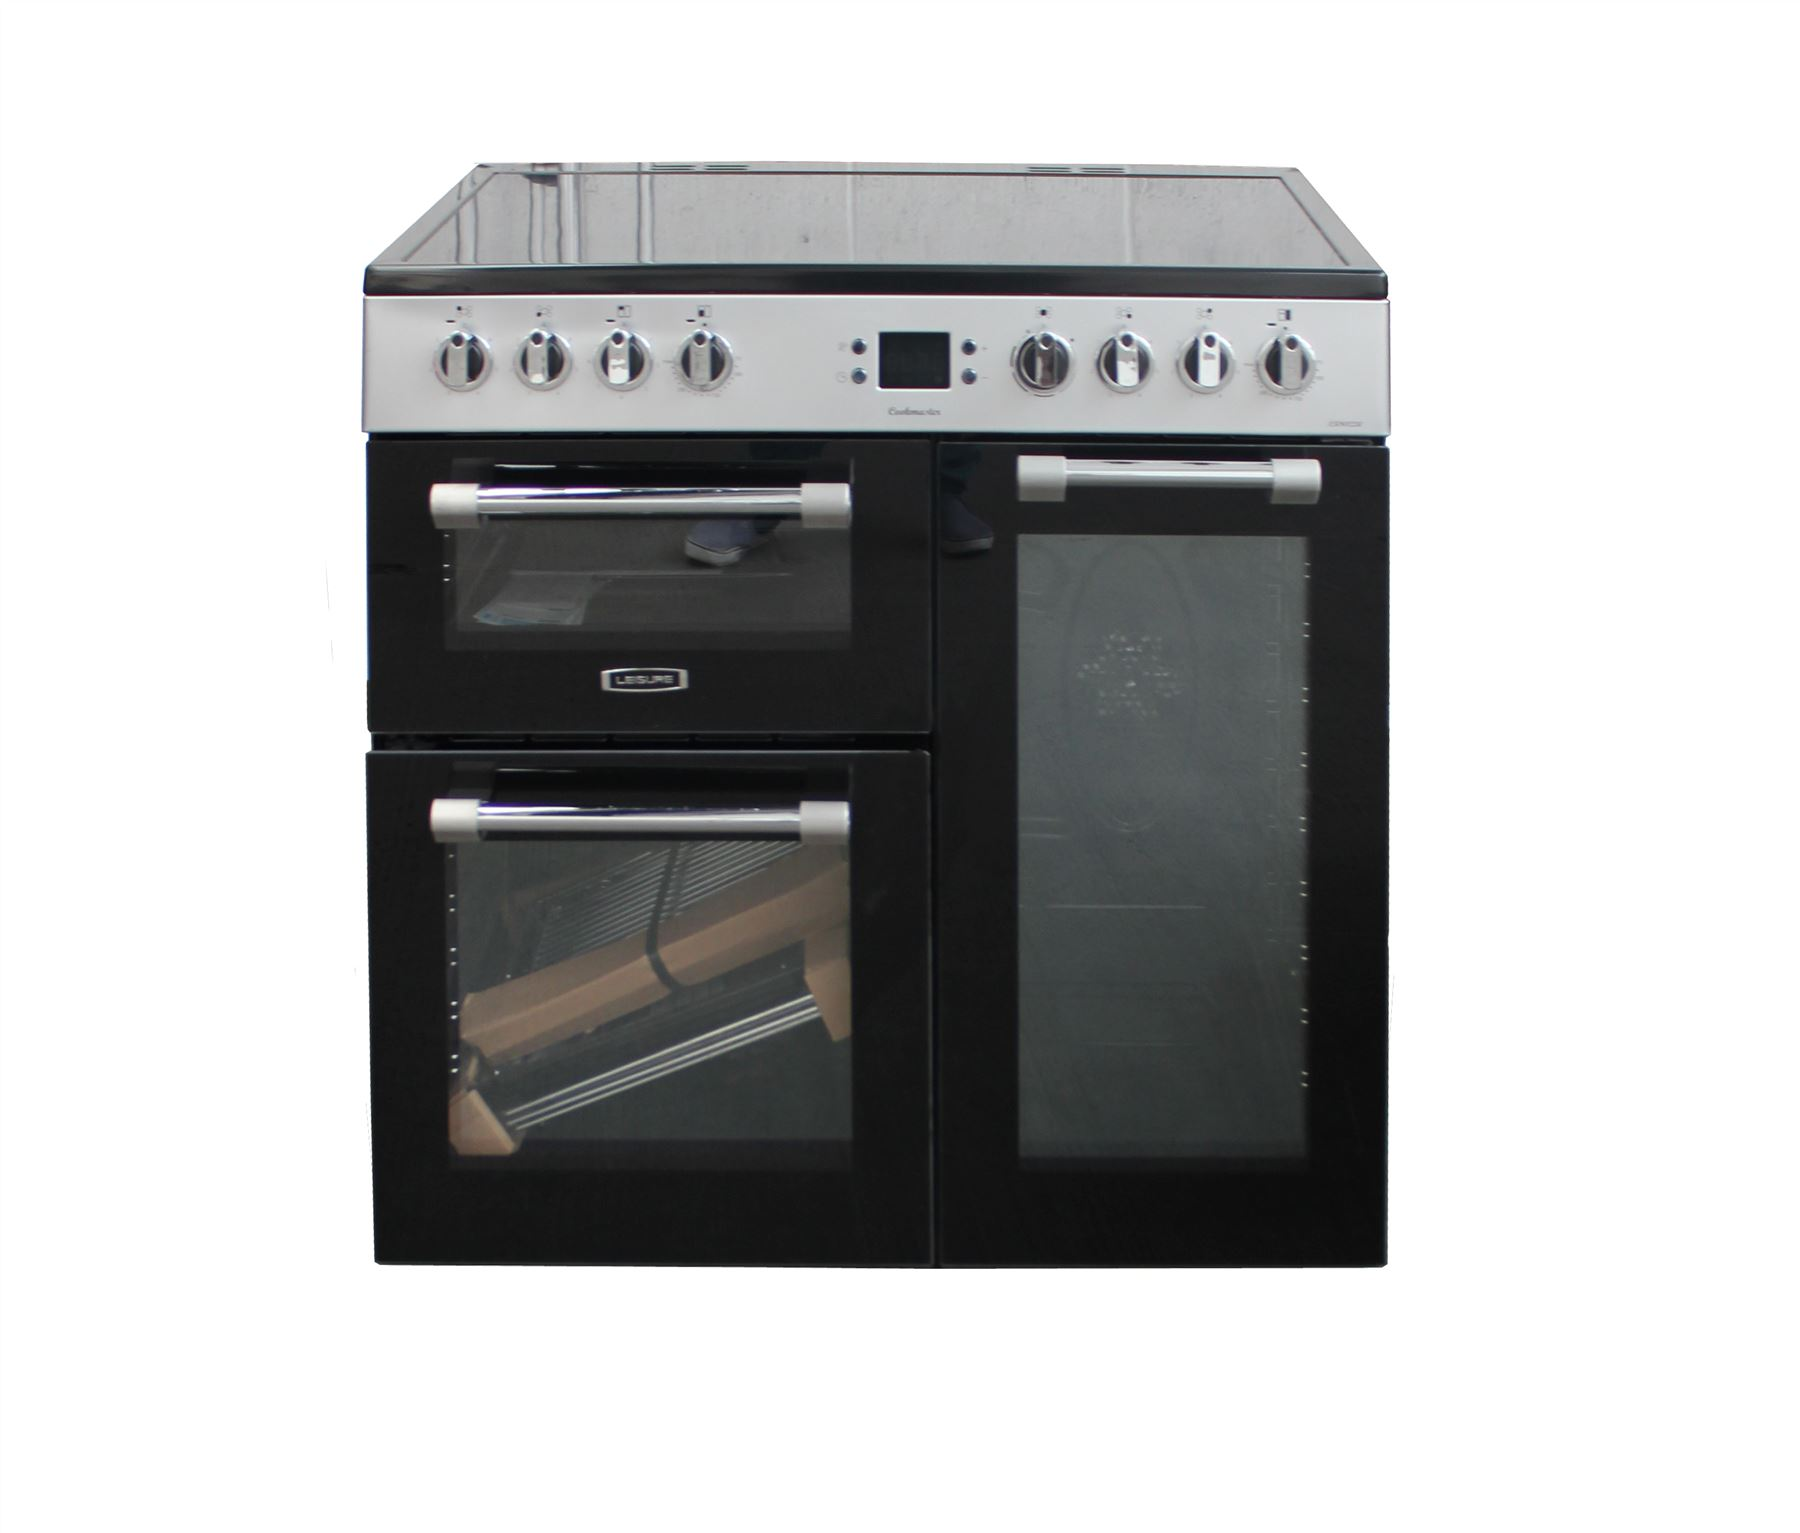 Leisure Cookmaster Ck90c230 Range Cooker 90cm Black 2245